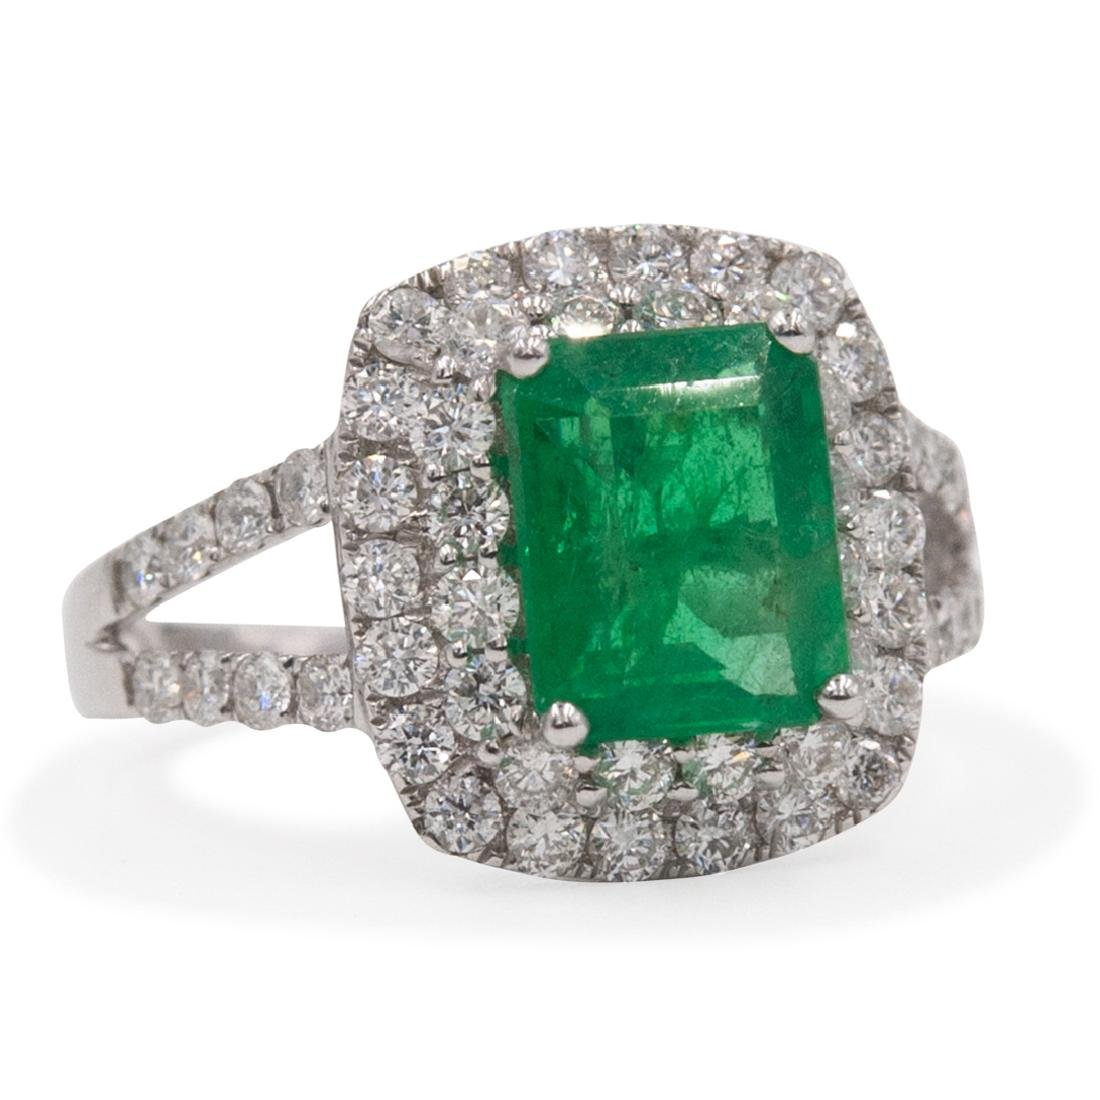 18k Gold, Emerald and Diamond Ring